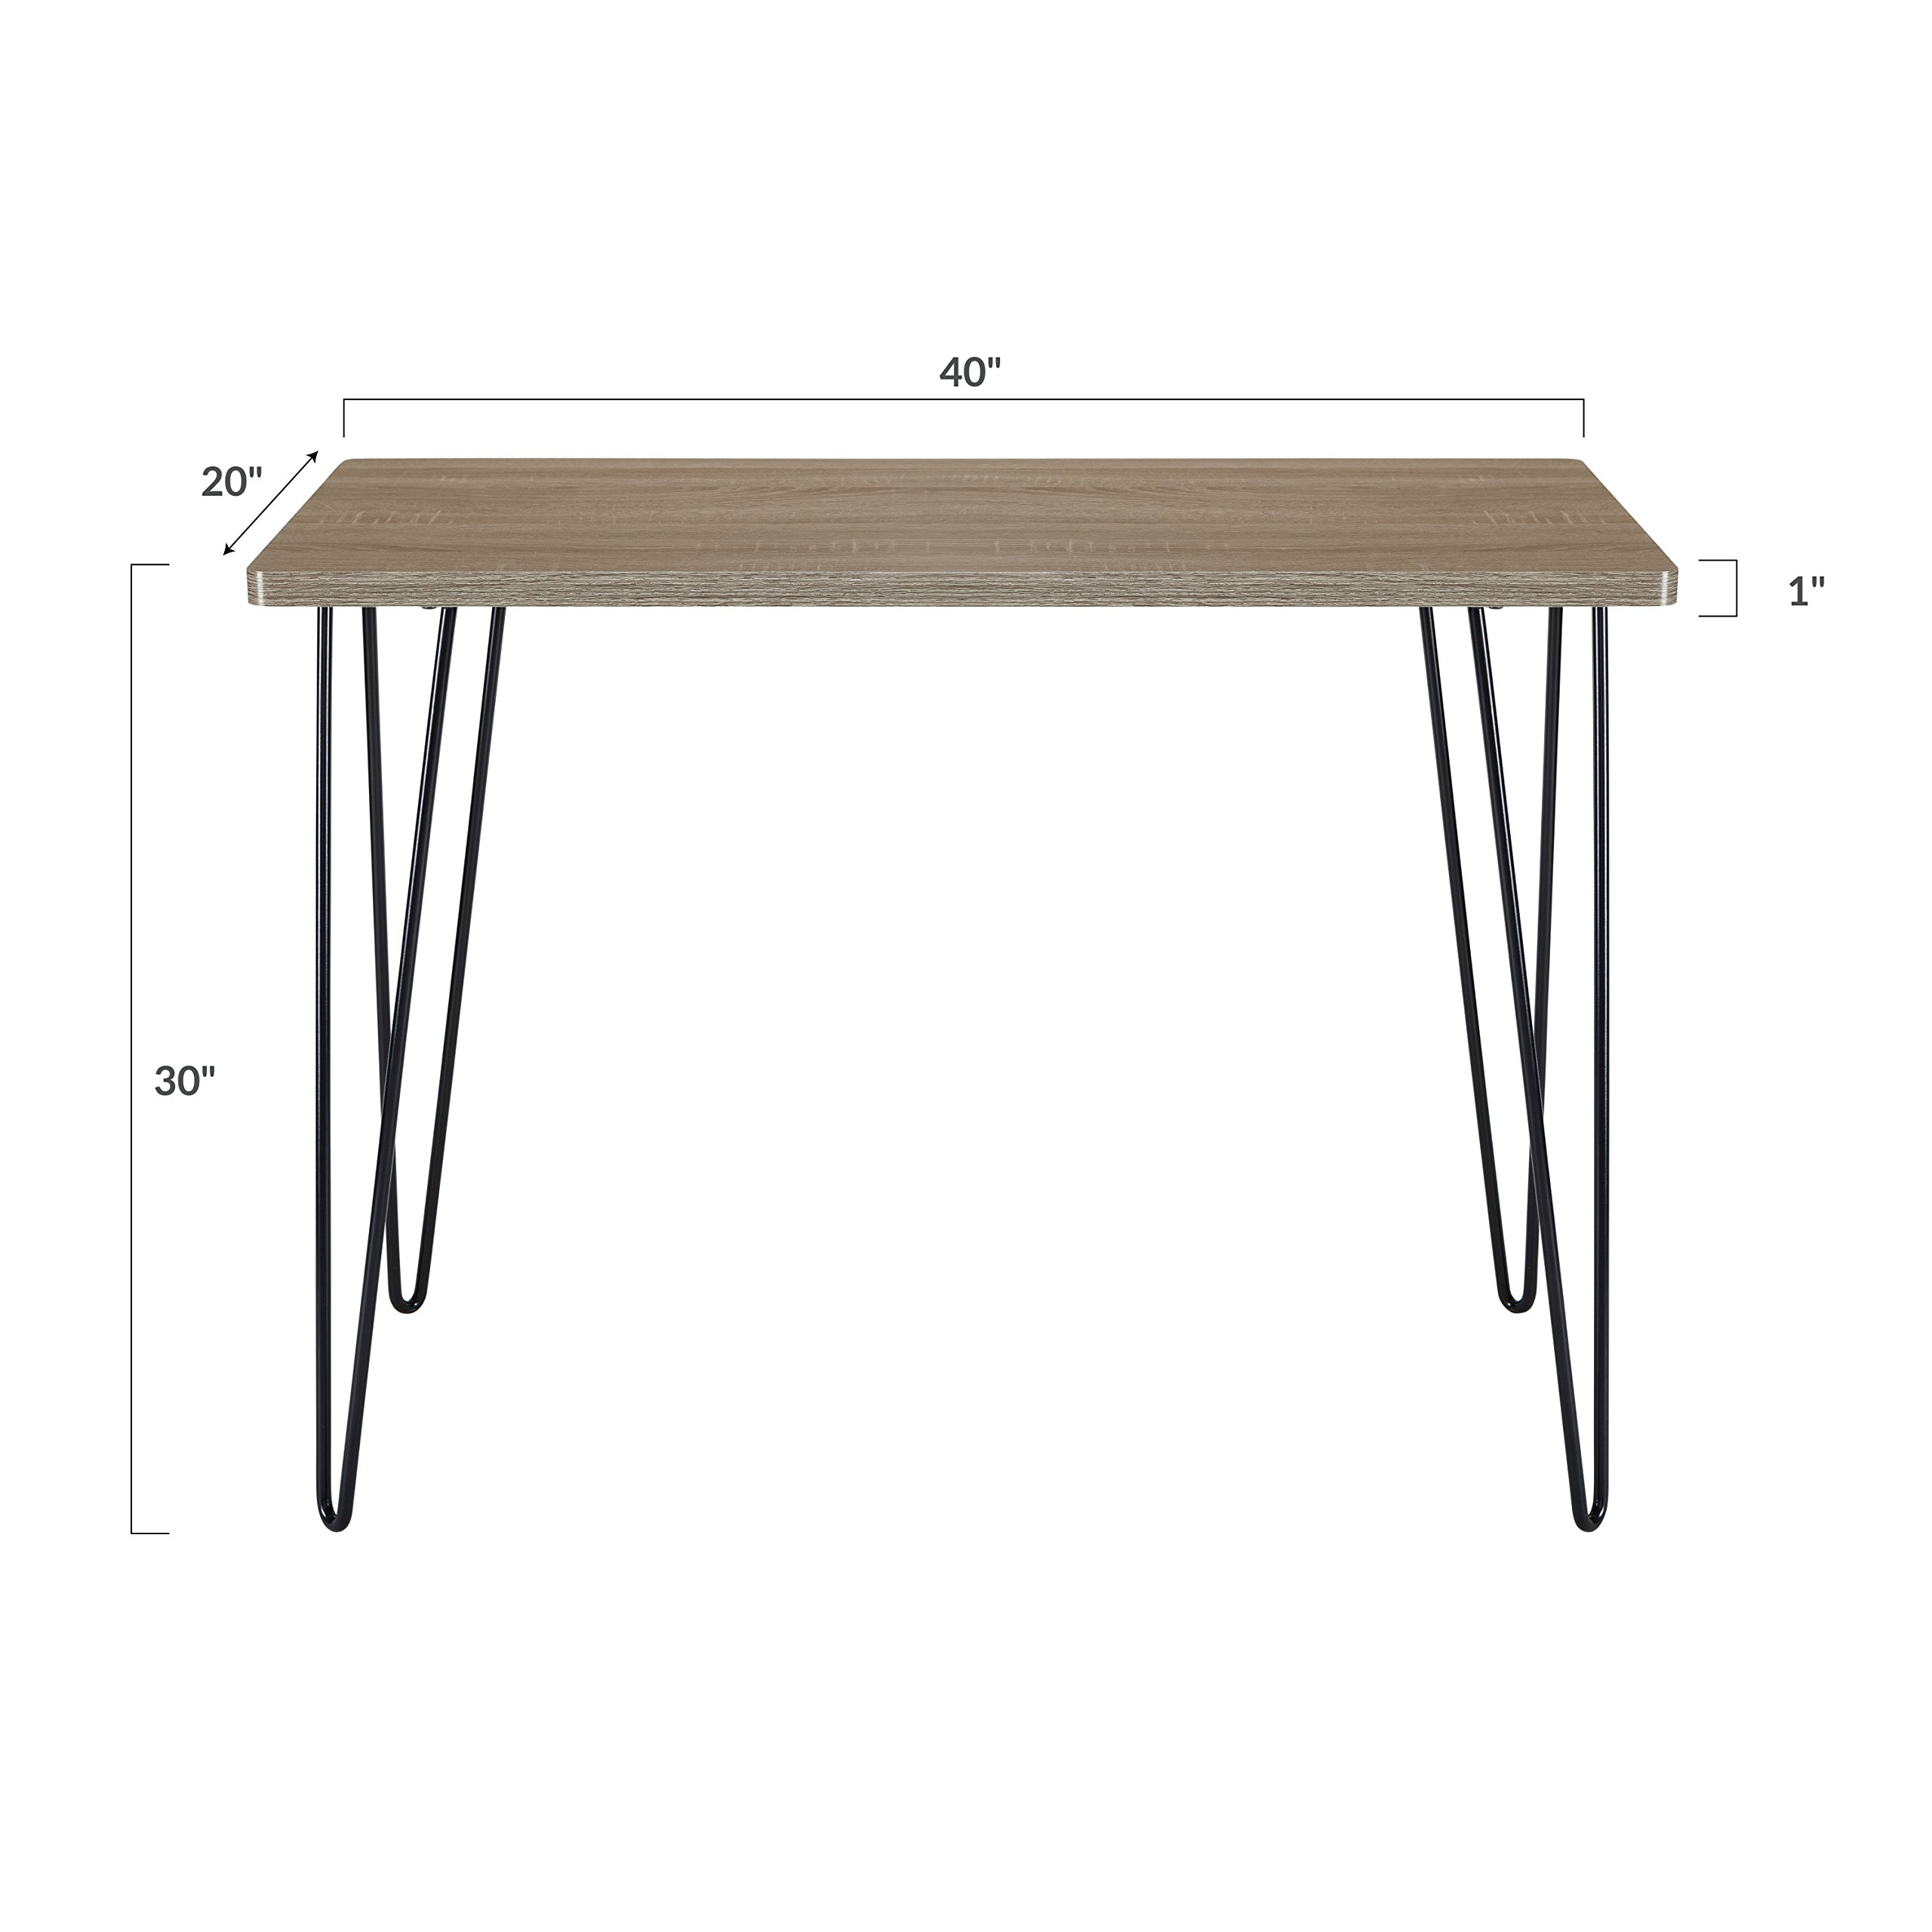 Poly and Bark Ralston Writing Desk - Standard Height - in Walnut